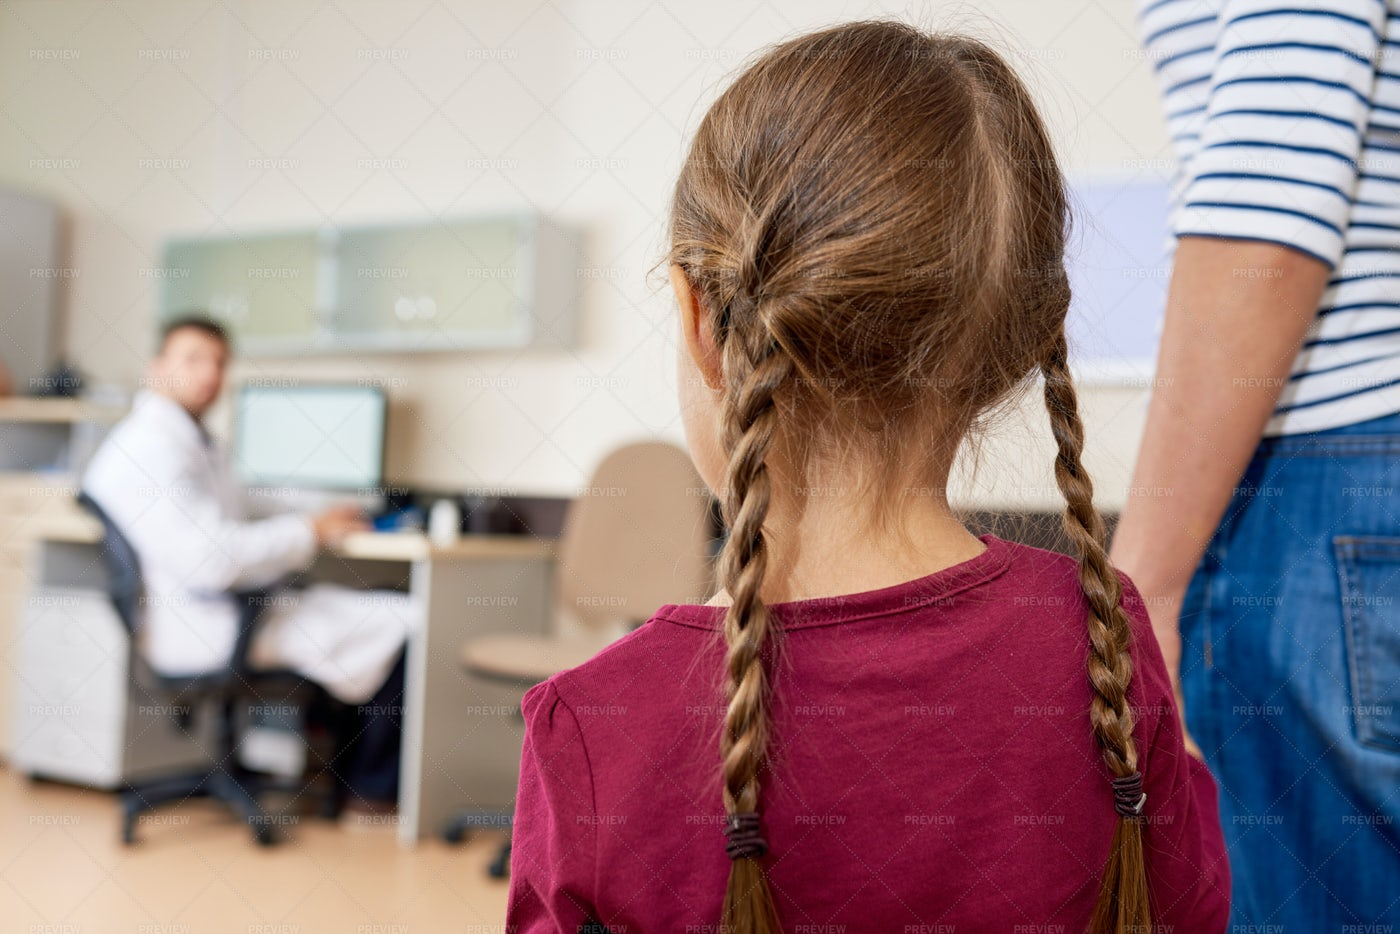 Scared Little Girl Entering Doctors...: Stock Photos